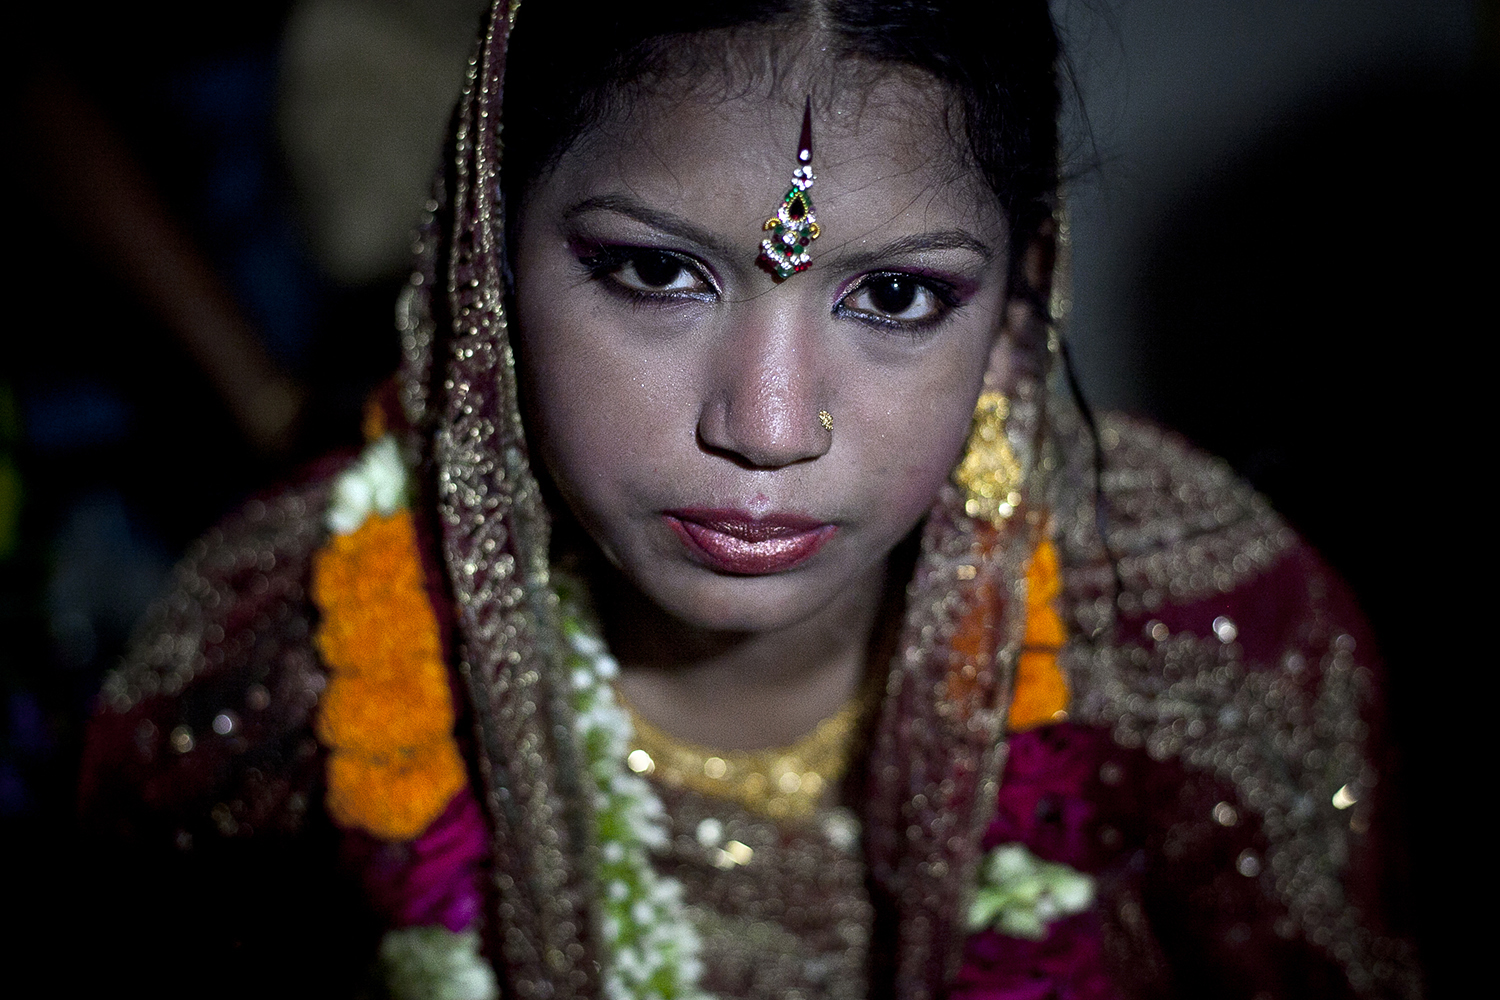 Thirteen-year-old Runa Akhter is seen the day of her wedding to a 29-year-old man in Manikganj, Bangladesh, on Aug. 29, 2014.